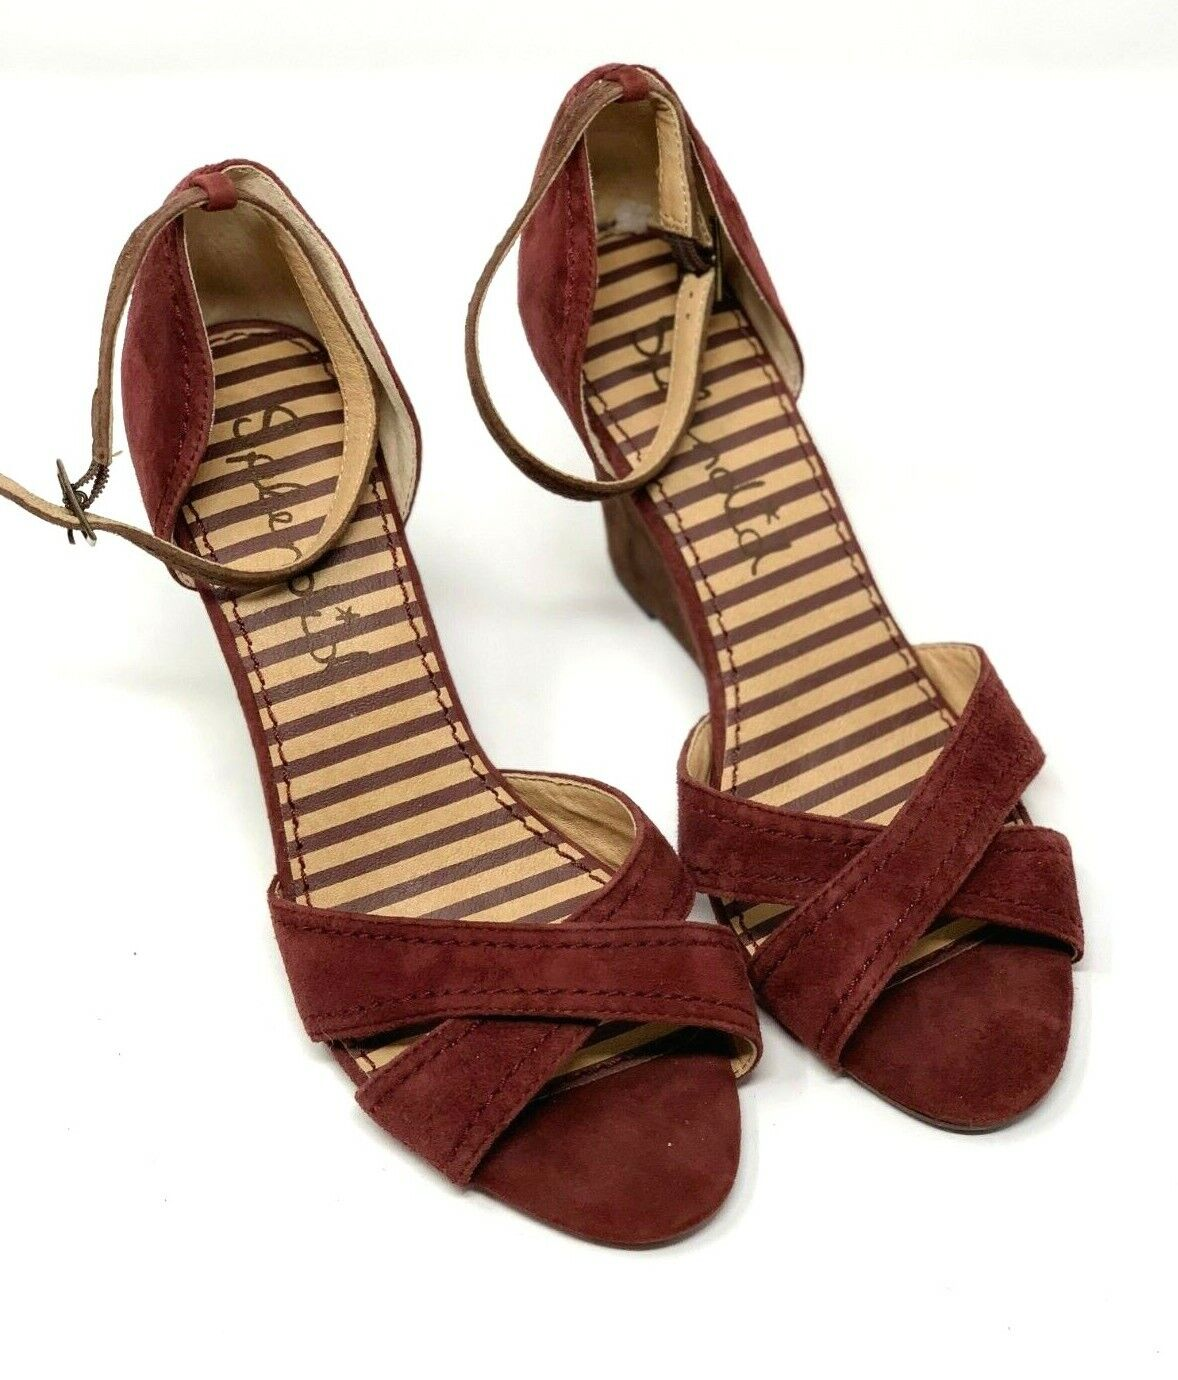 New Womens Splendid Leather Suede Burgundy Brown Wedge Sandals Size 8M